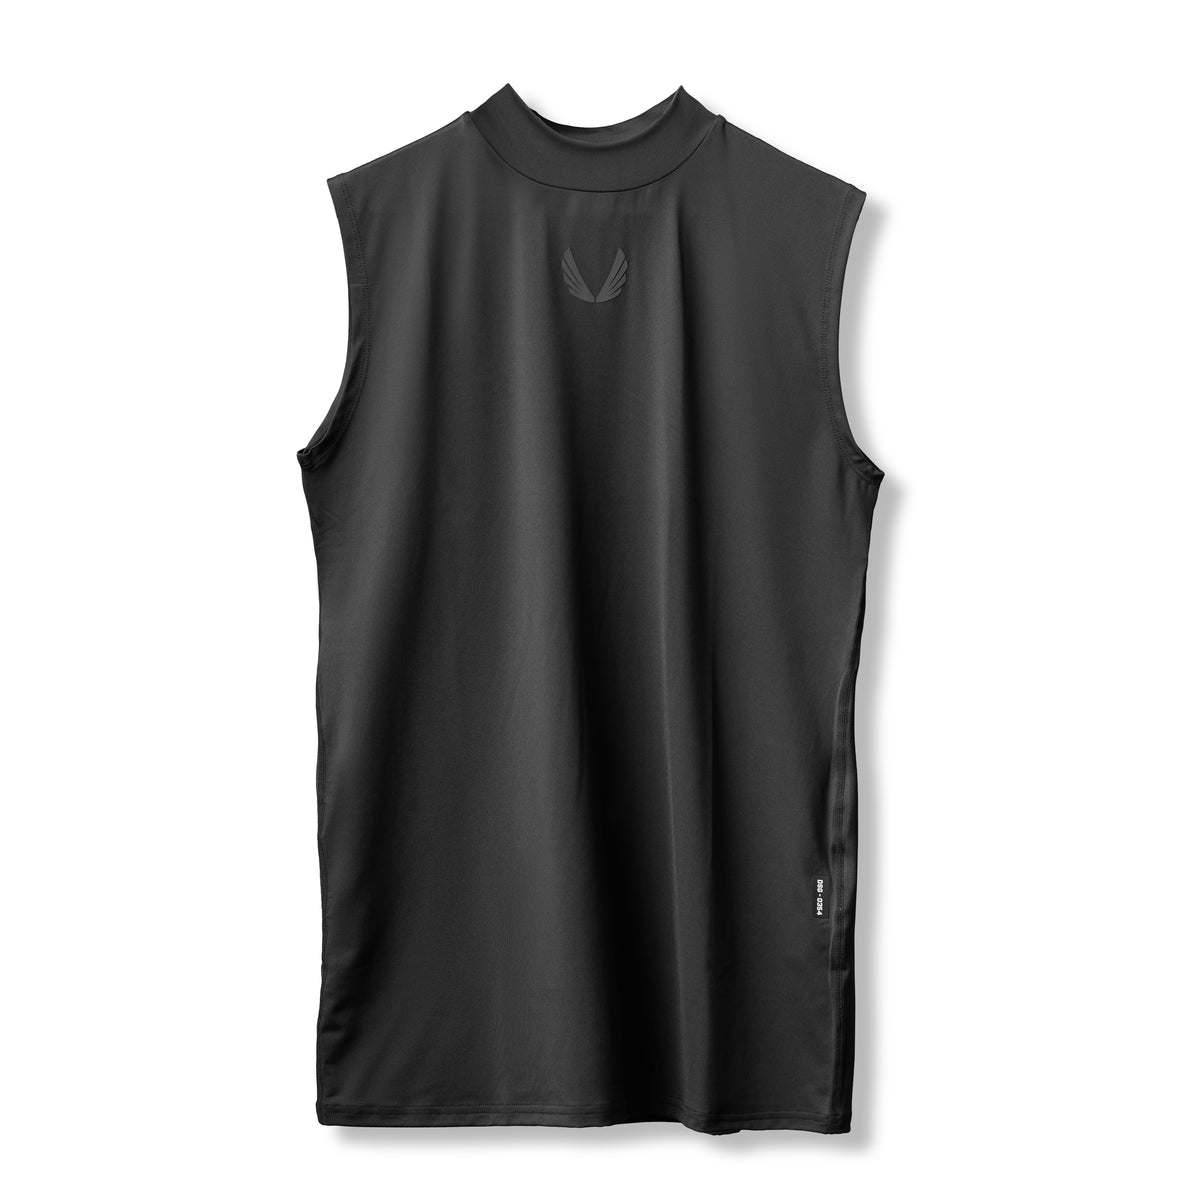 0354. SilverPlus® Mock Neck Muscle Tee - Black